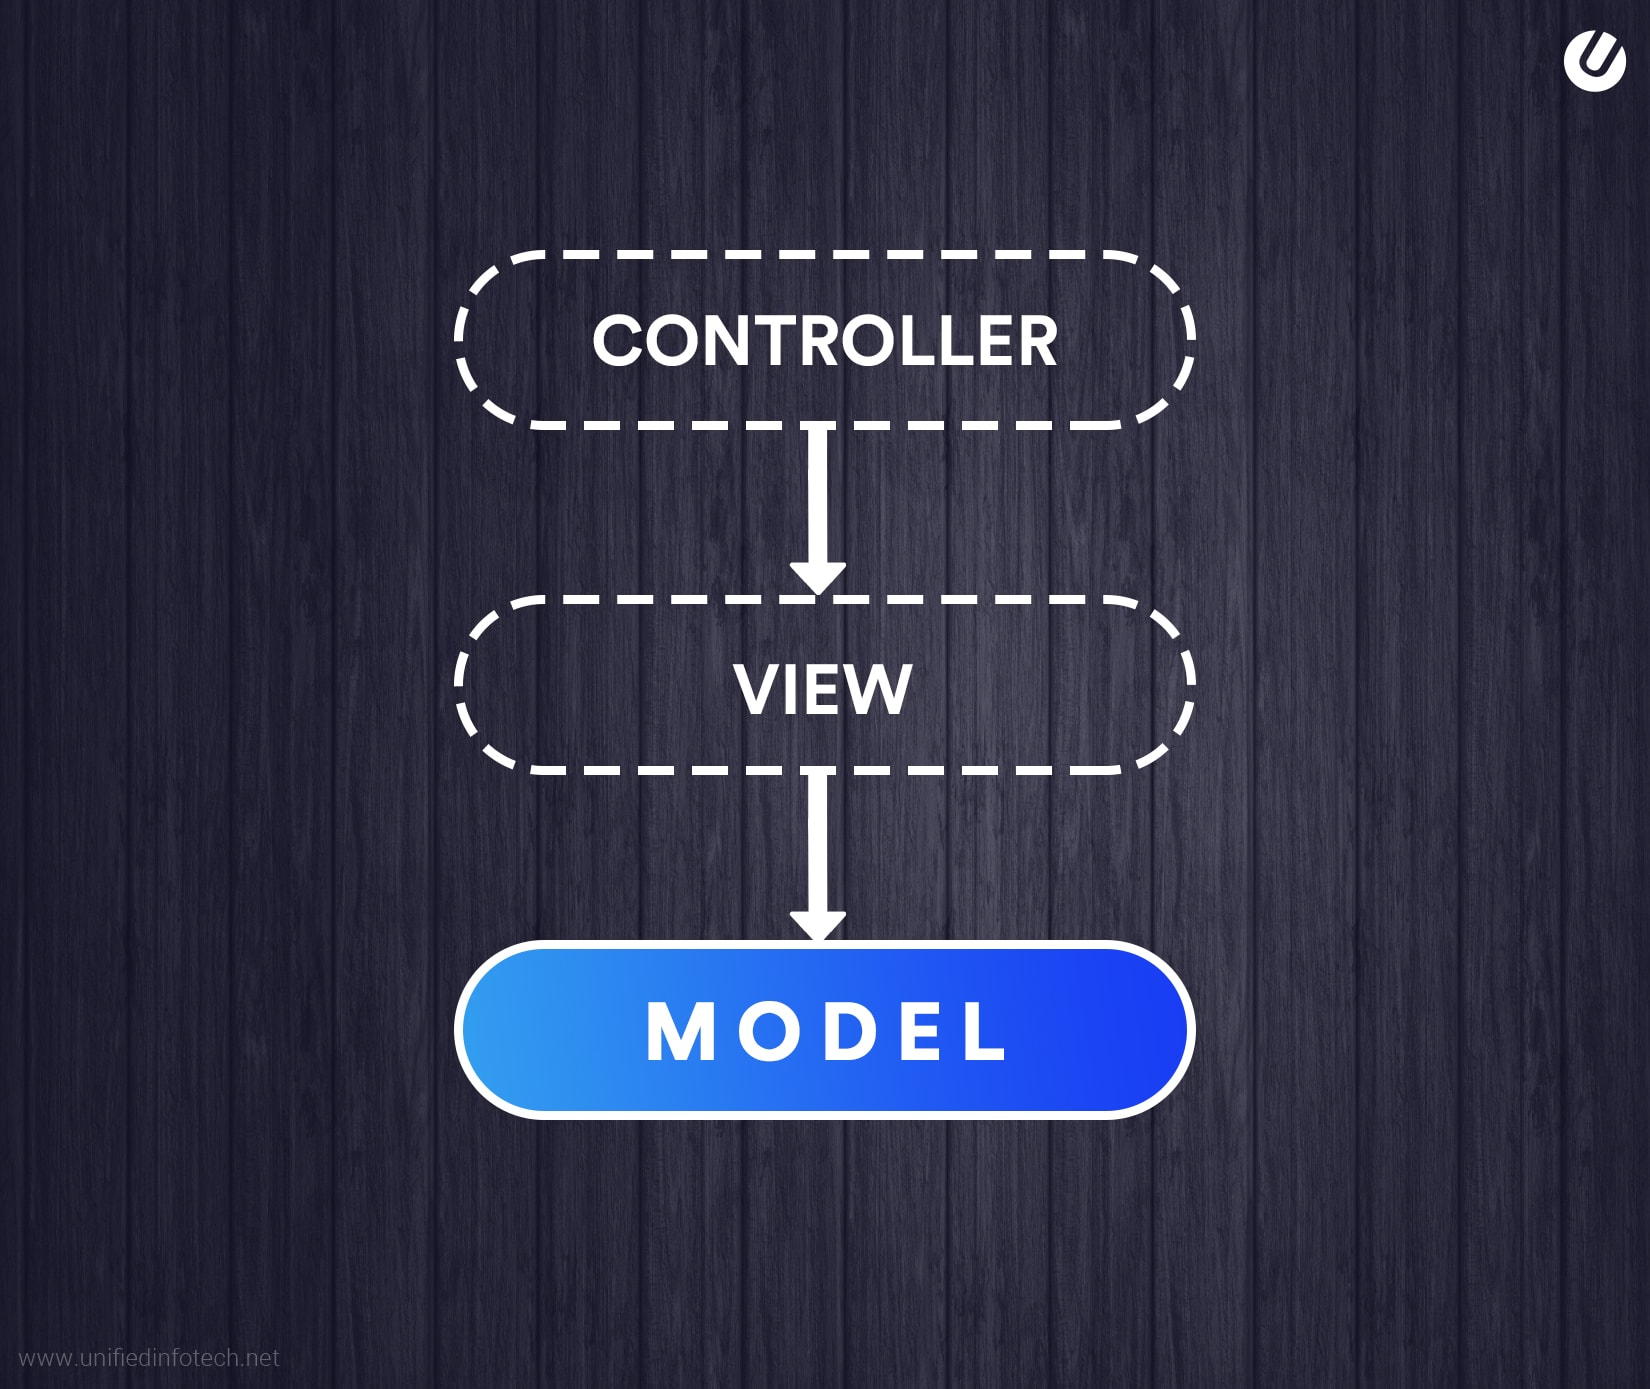 web application architecture controller view model